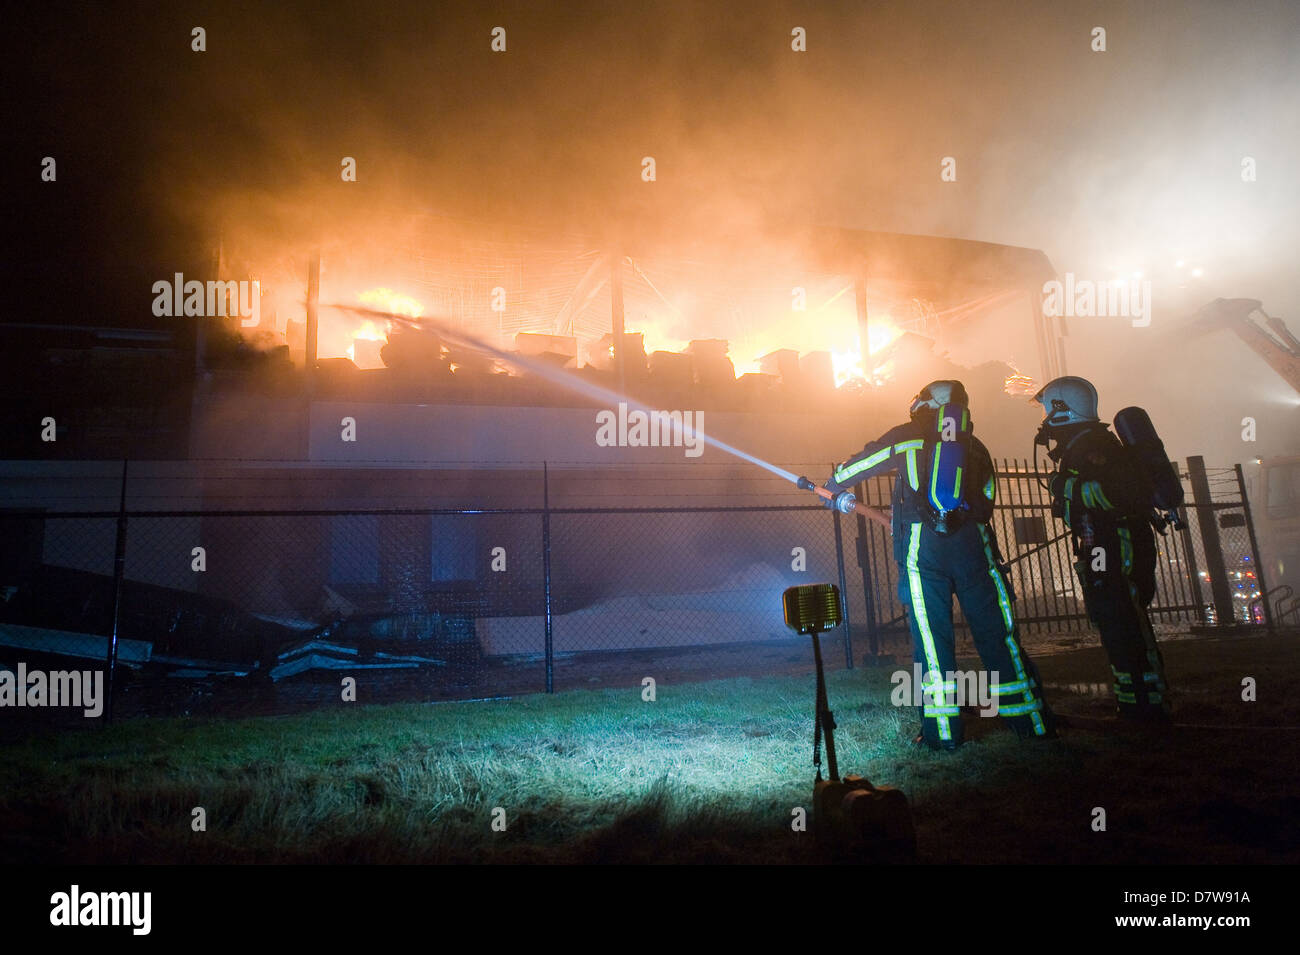 Two firefighters are trying to extinguish a fire in a building - Stock Image